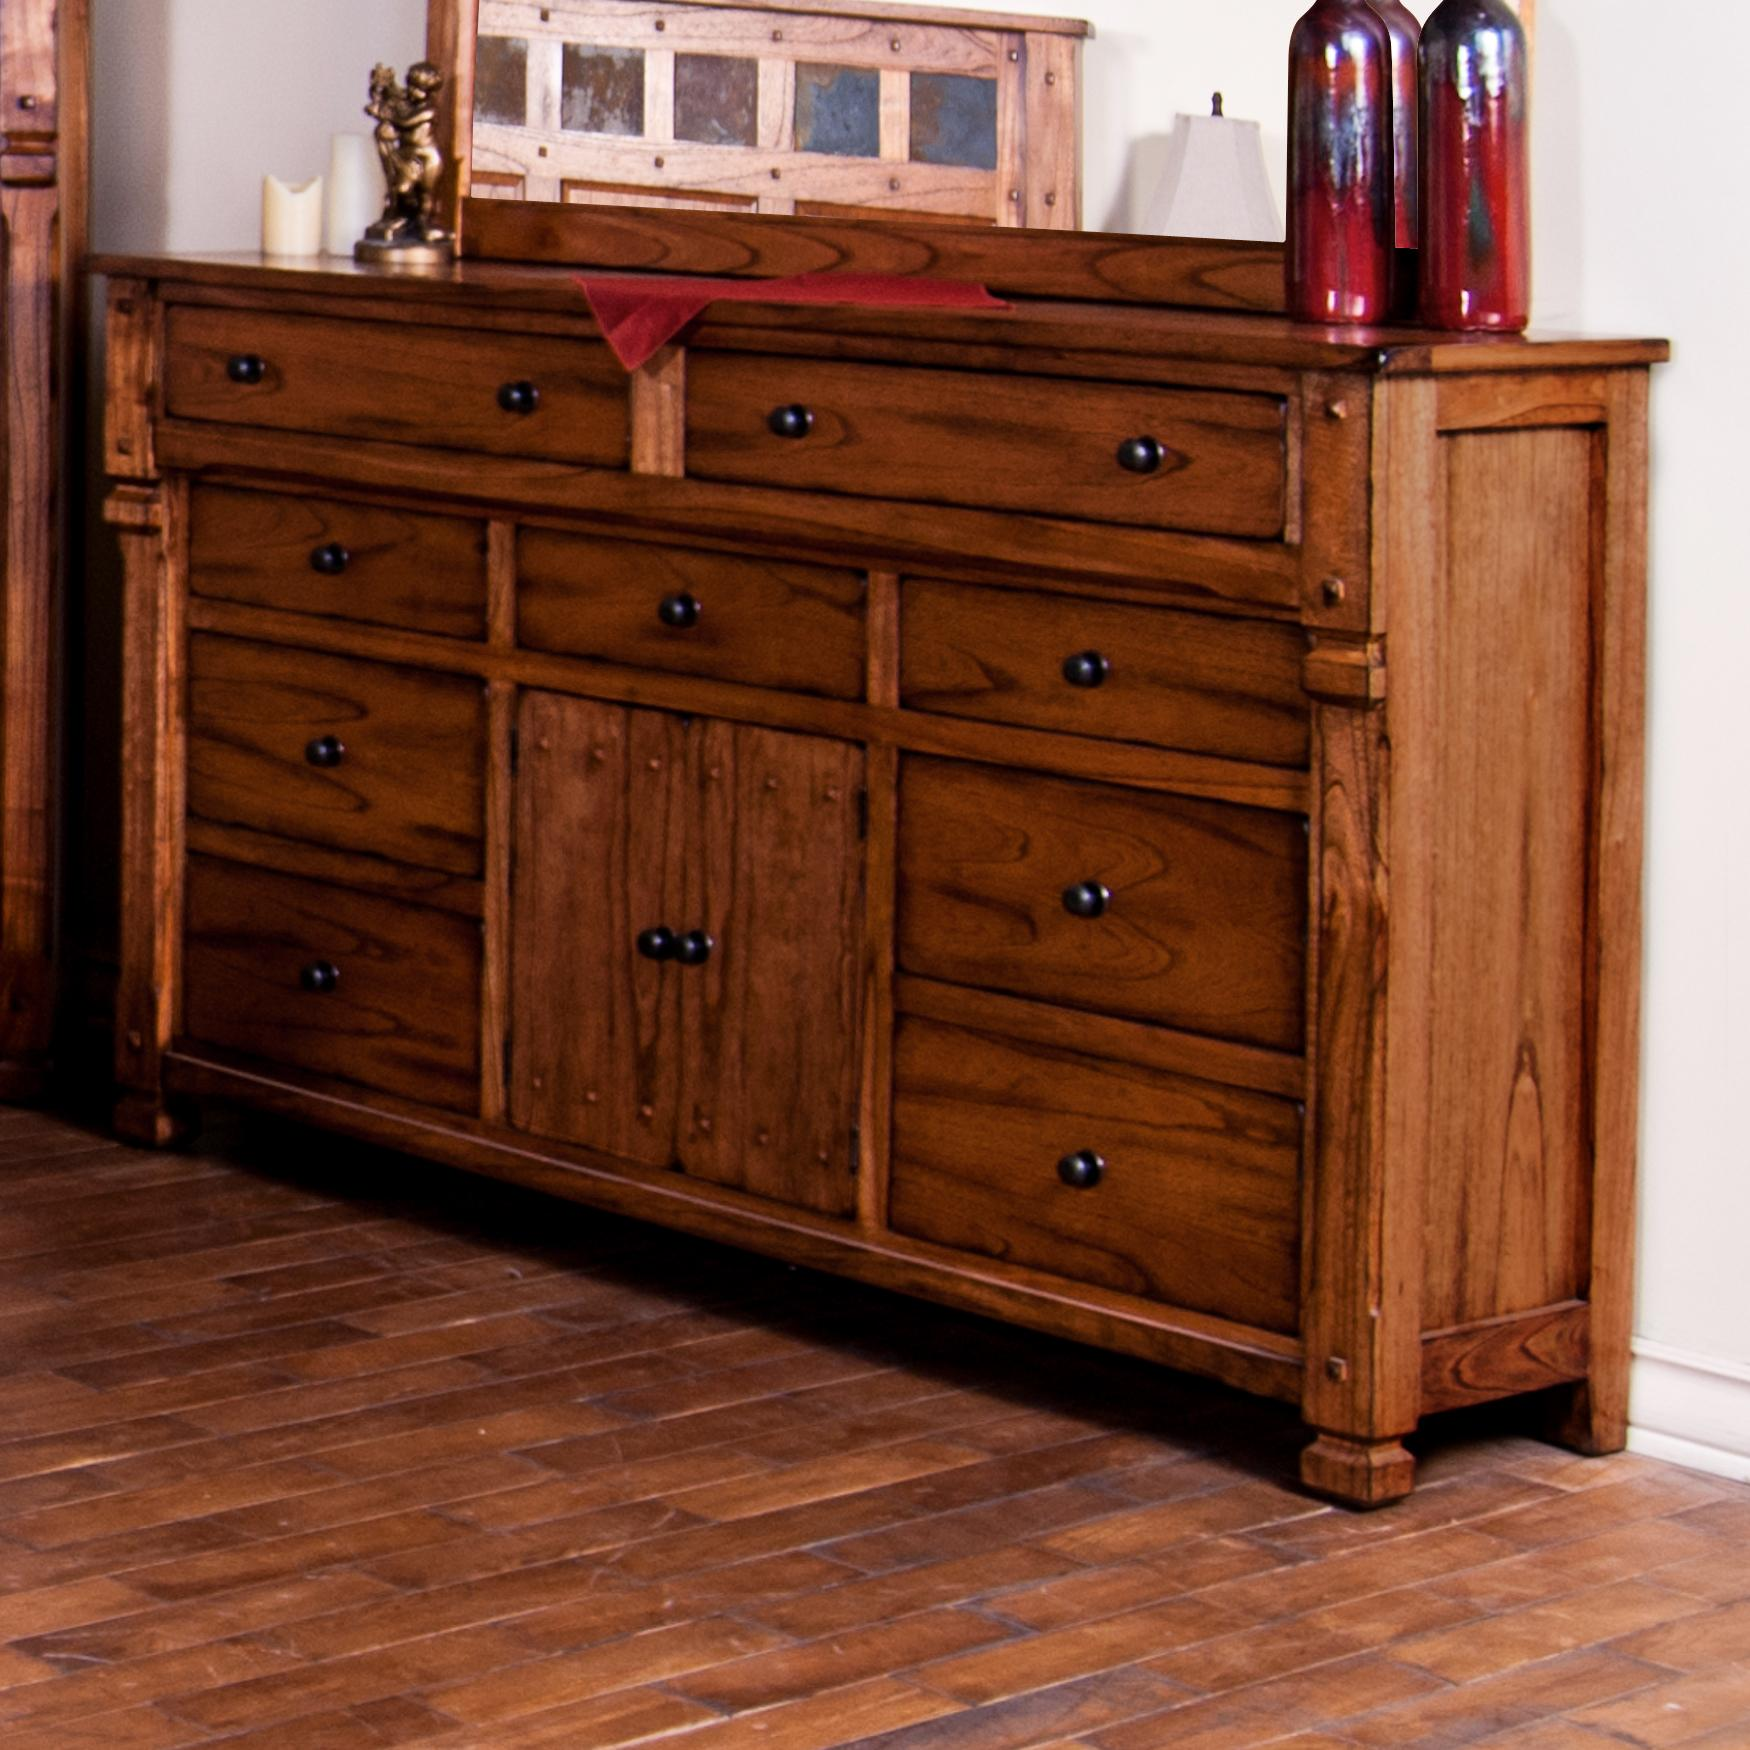 Sunny Designs Sedona Rustic Dresser with Doors | Fashion ...